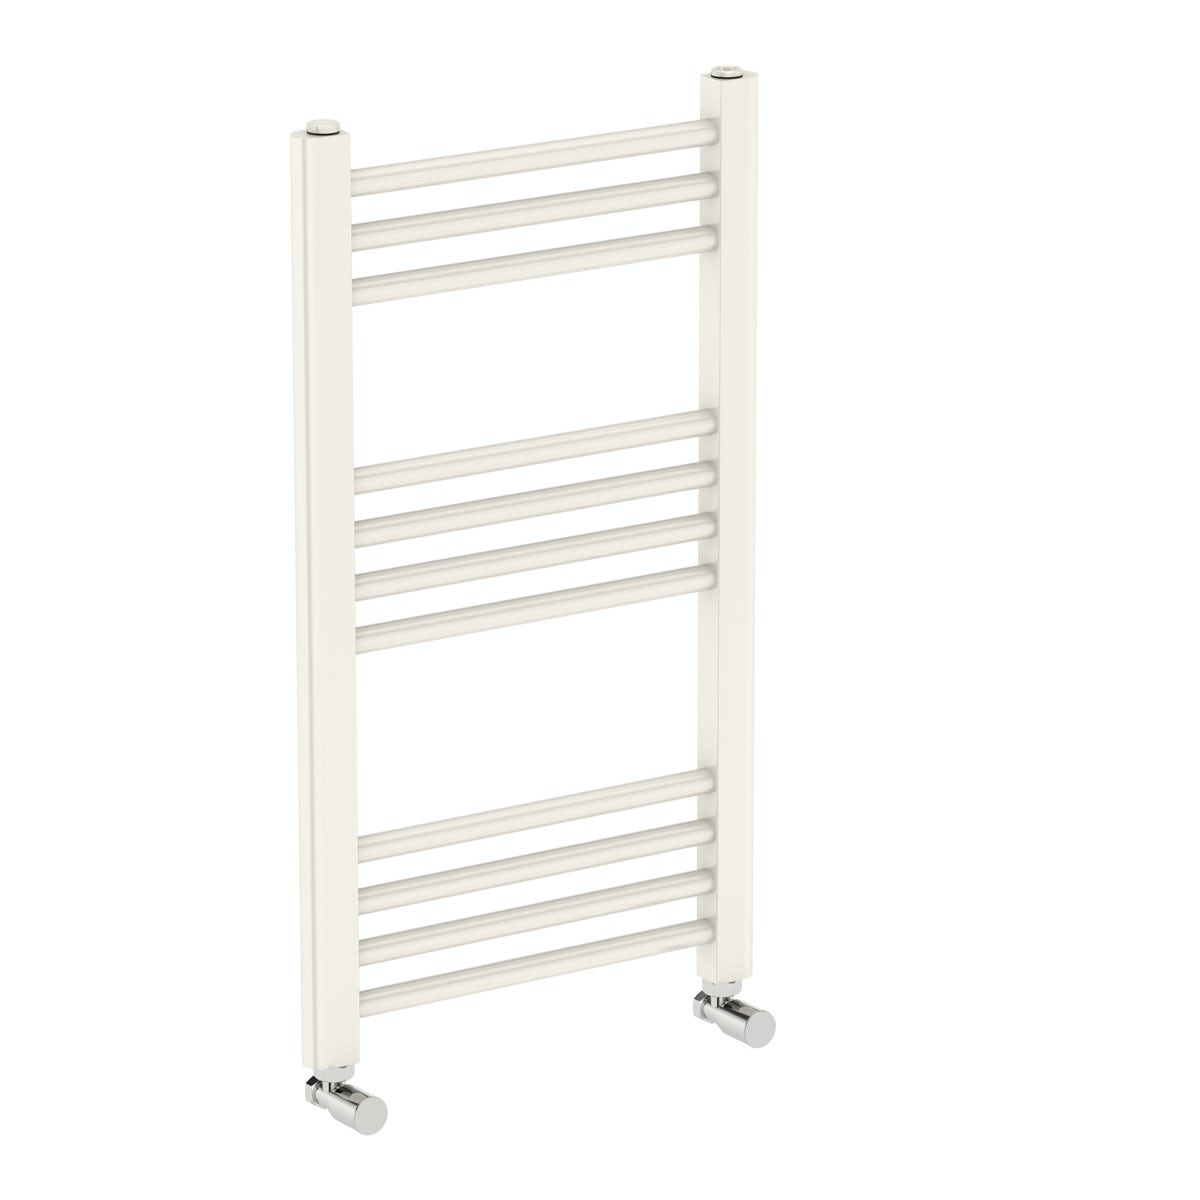 Orchard Eden round white heated towel rail 700 x 400 offer pack